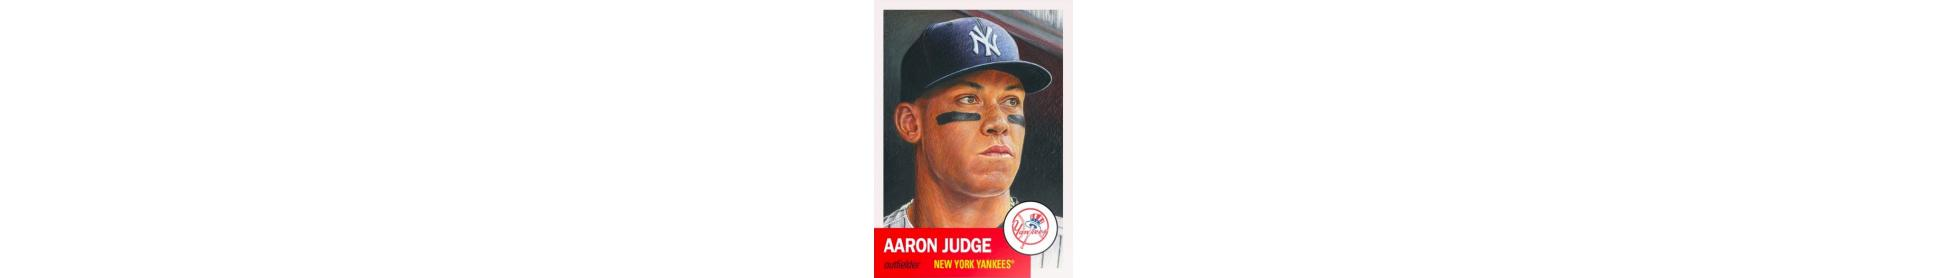 Welcome to the New Topps.com!